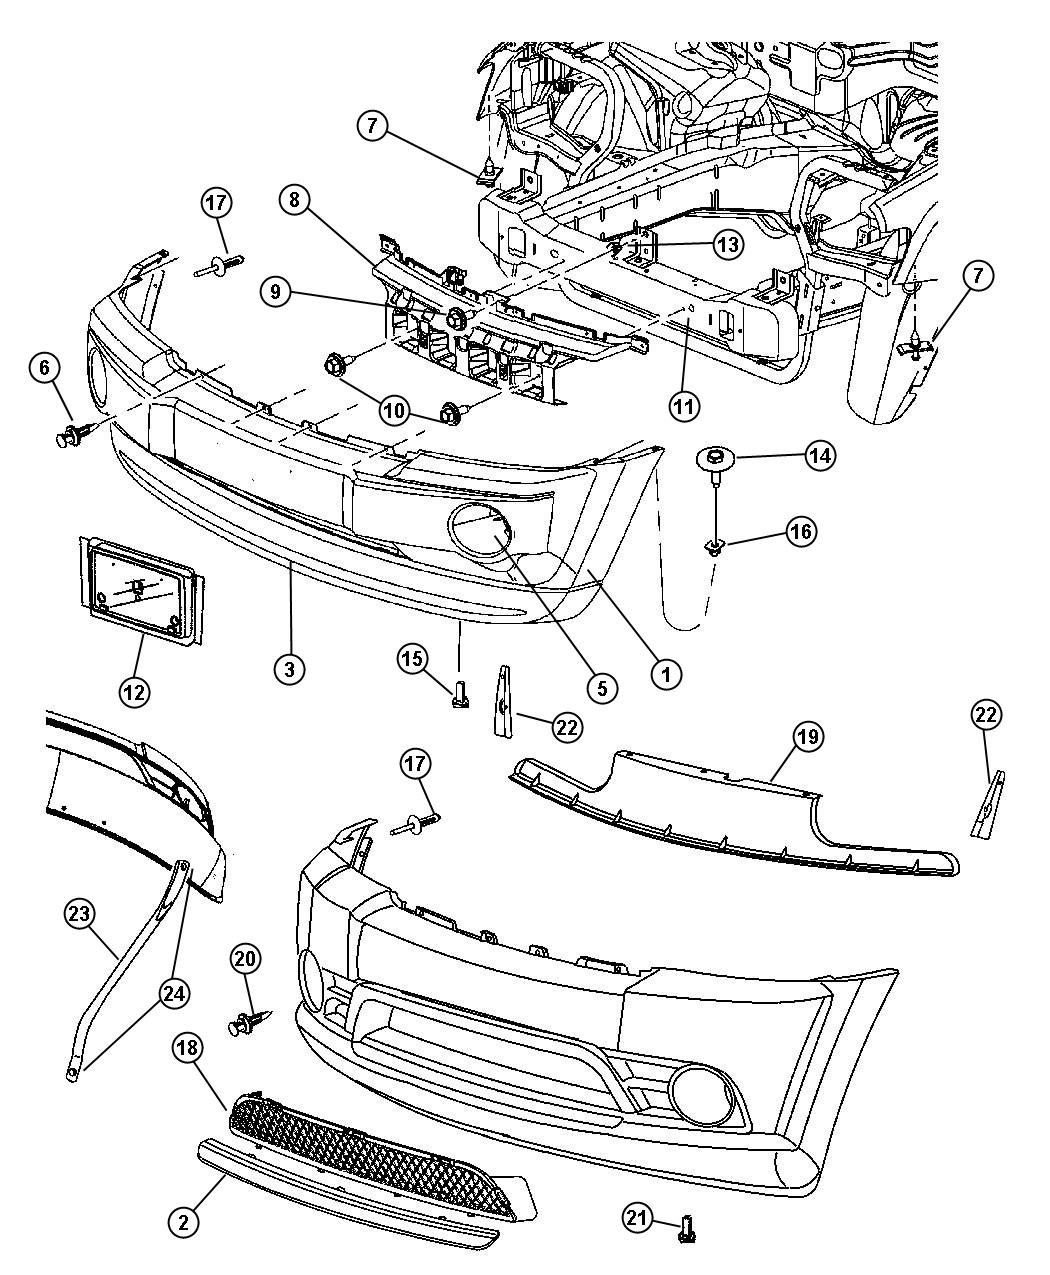 2007 chrysler aspen fuse box diagram wiring diagram database For a Chrysler 300 Front Fuse Box wiring harness for chrysler aspen auto electrical wiring diagram chrysler 300 fuse box location 2007 chrysler aspen fuse box diagram